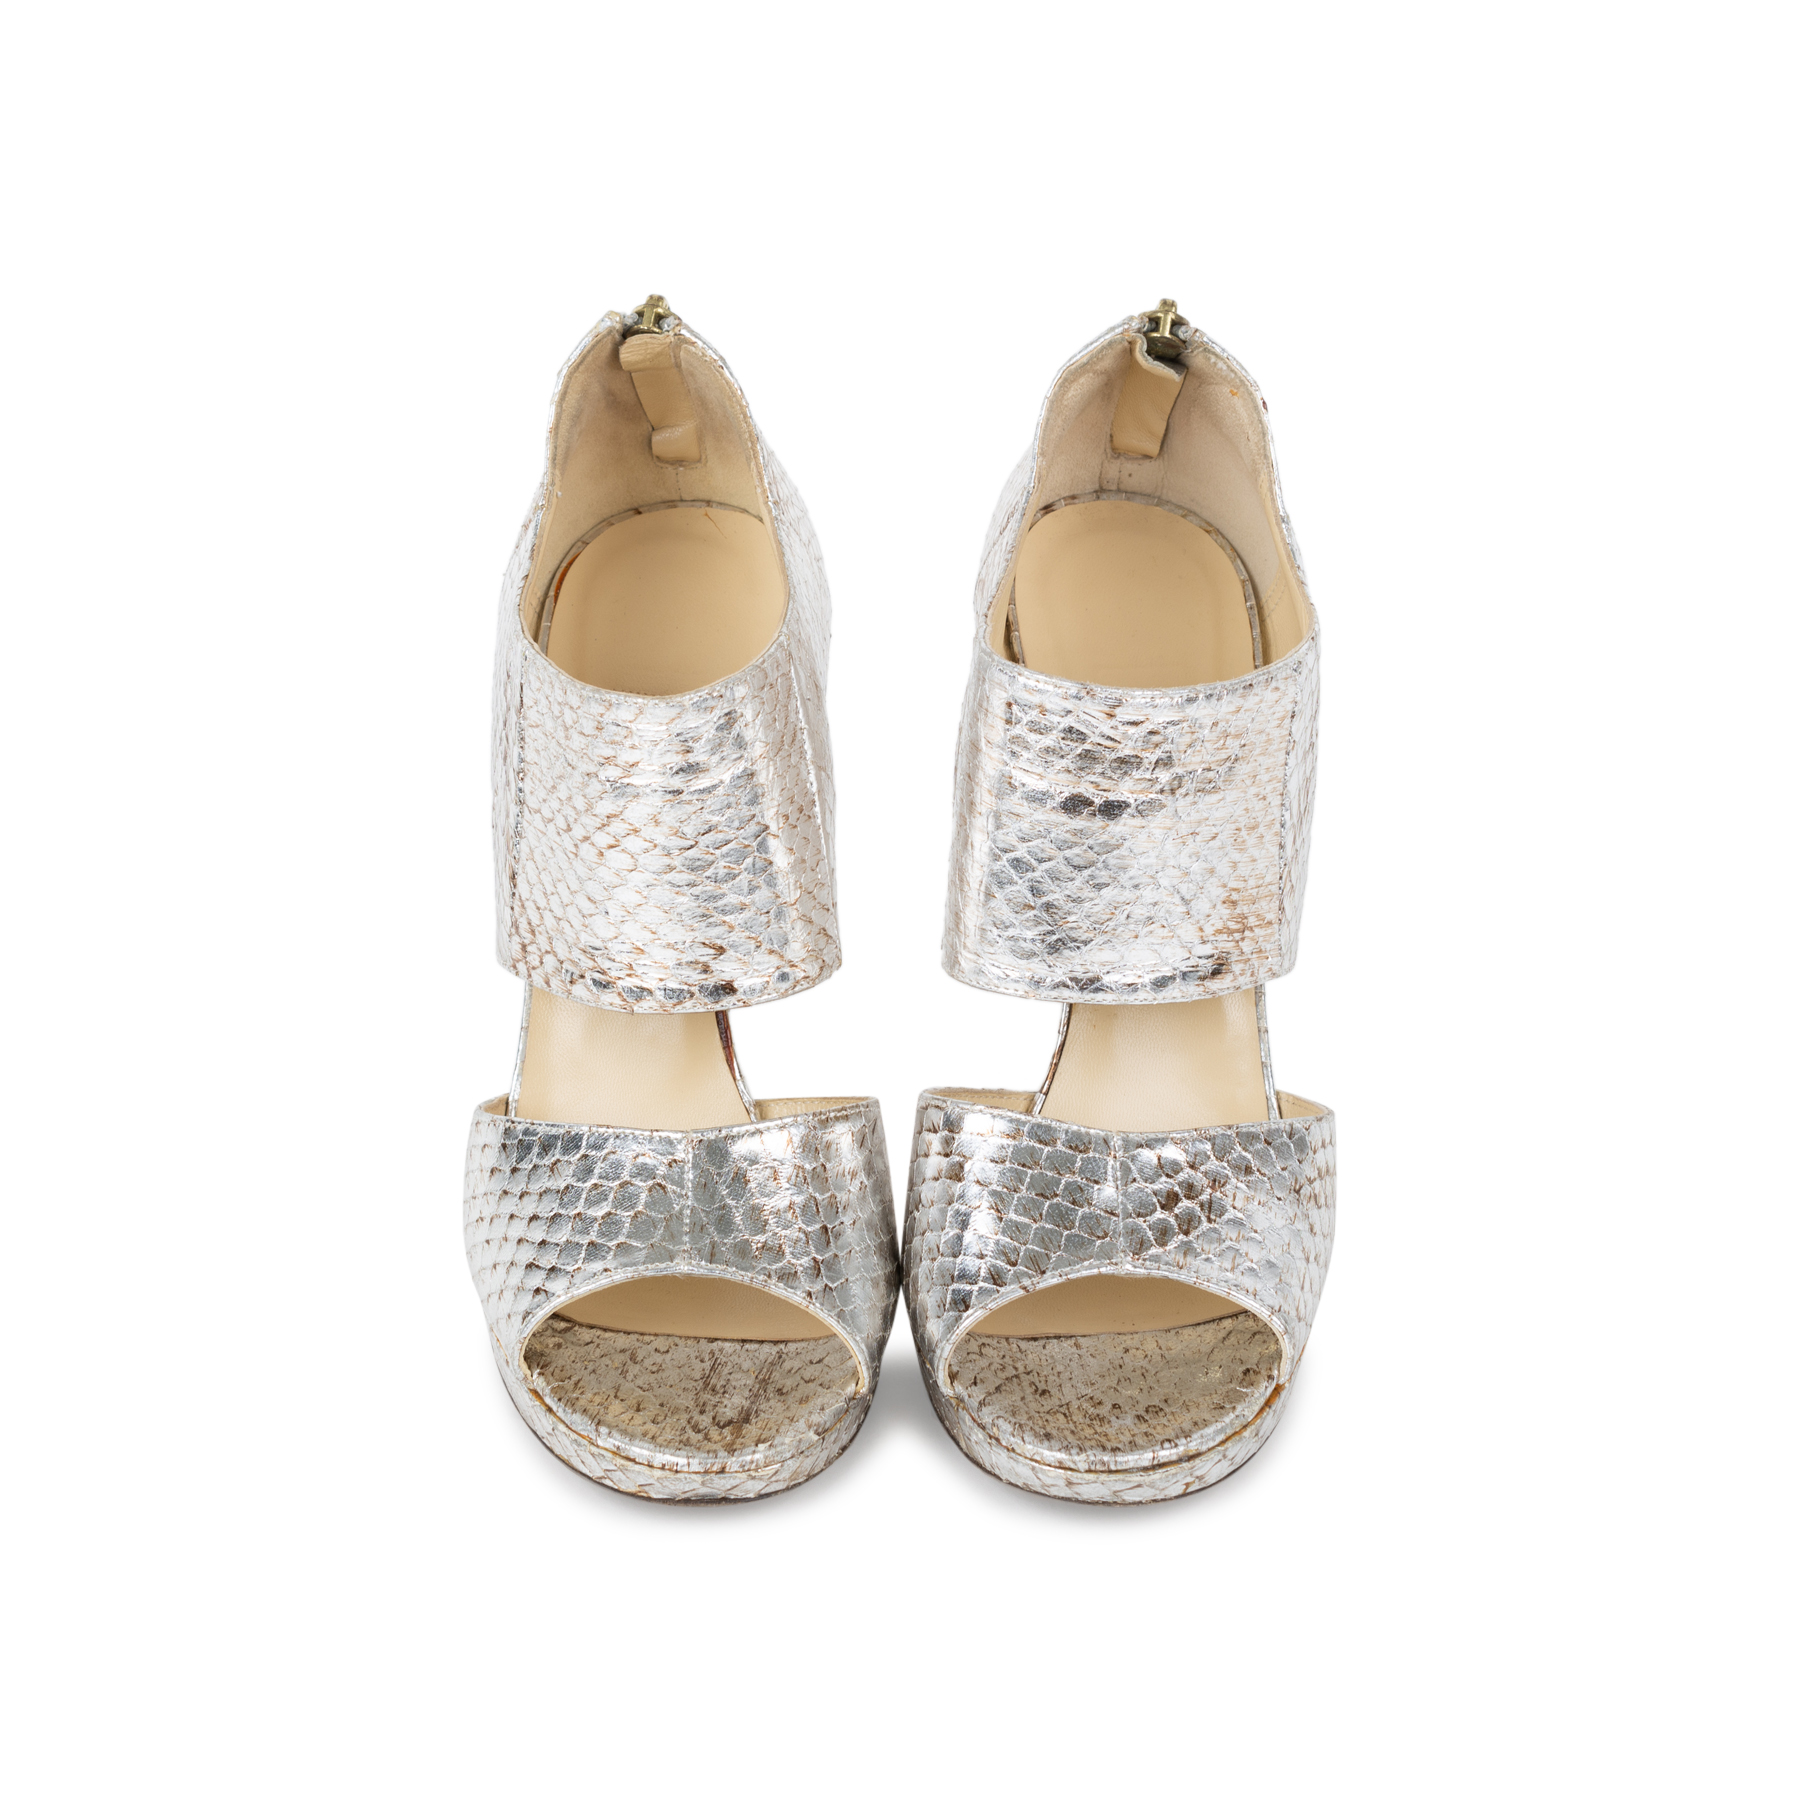 27dca70ee Authentic Second Hand Jimmy Choo Zipped Elaphe Snake Sandals  (PSS-557-00008)